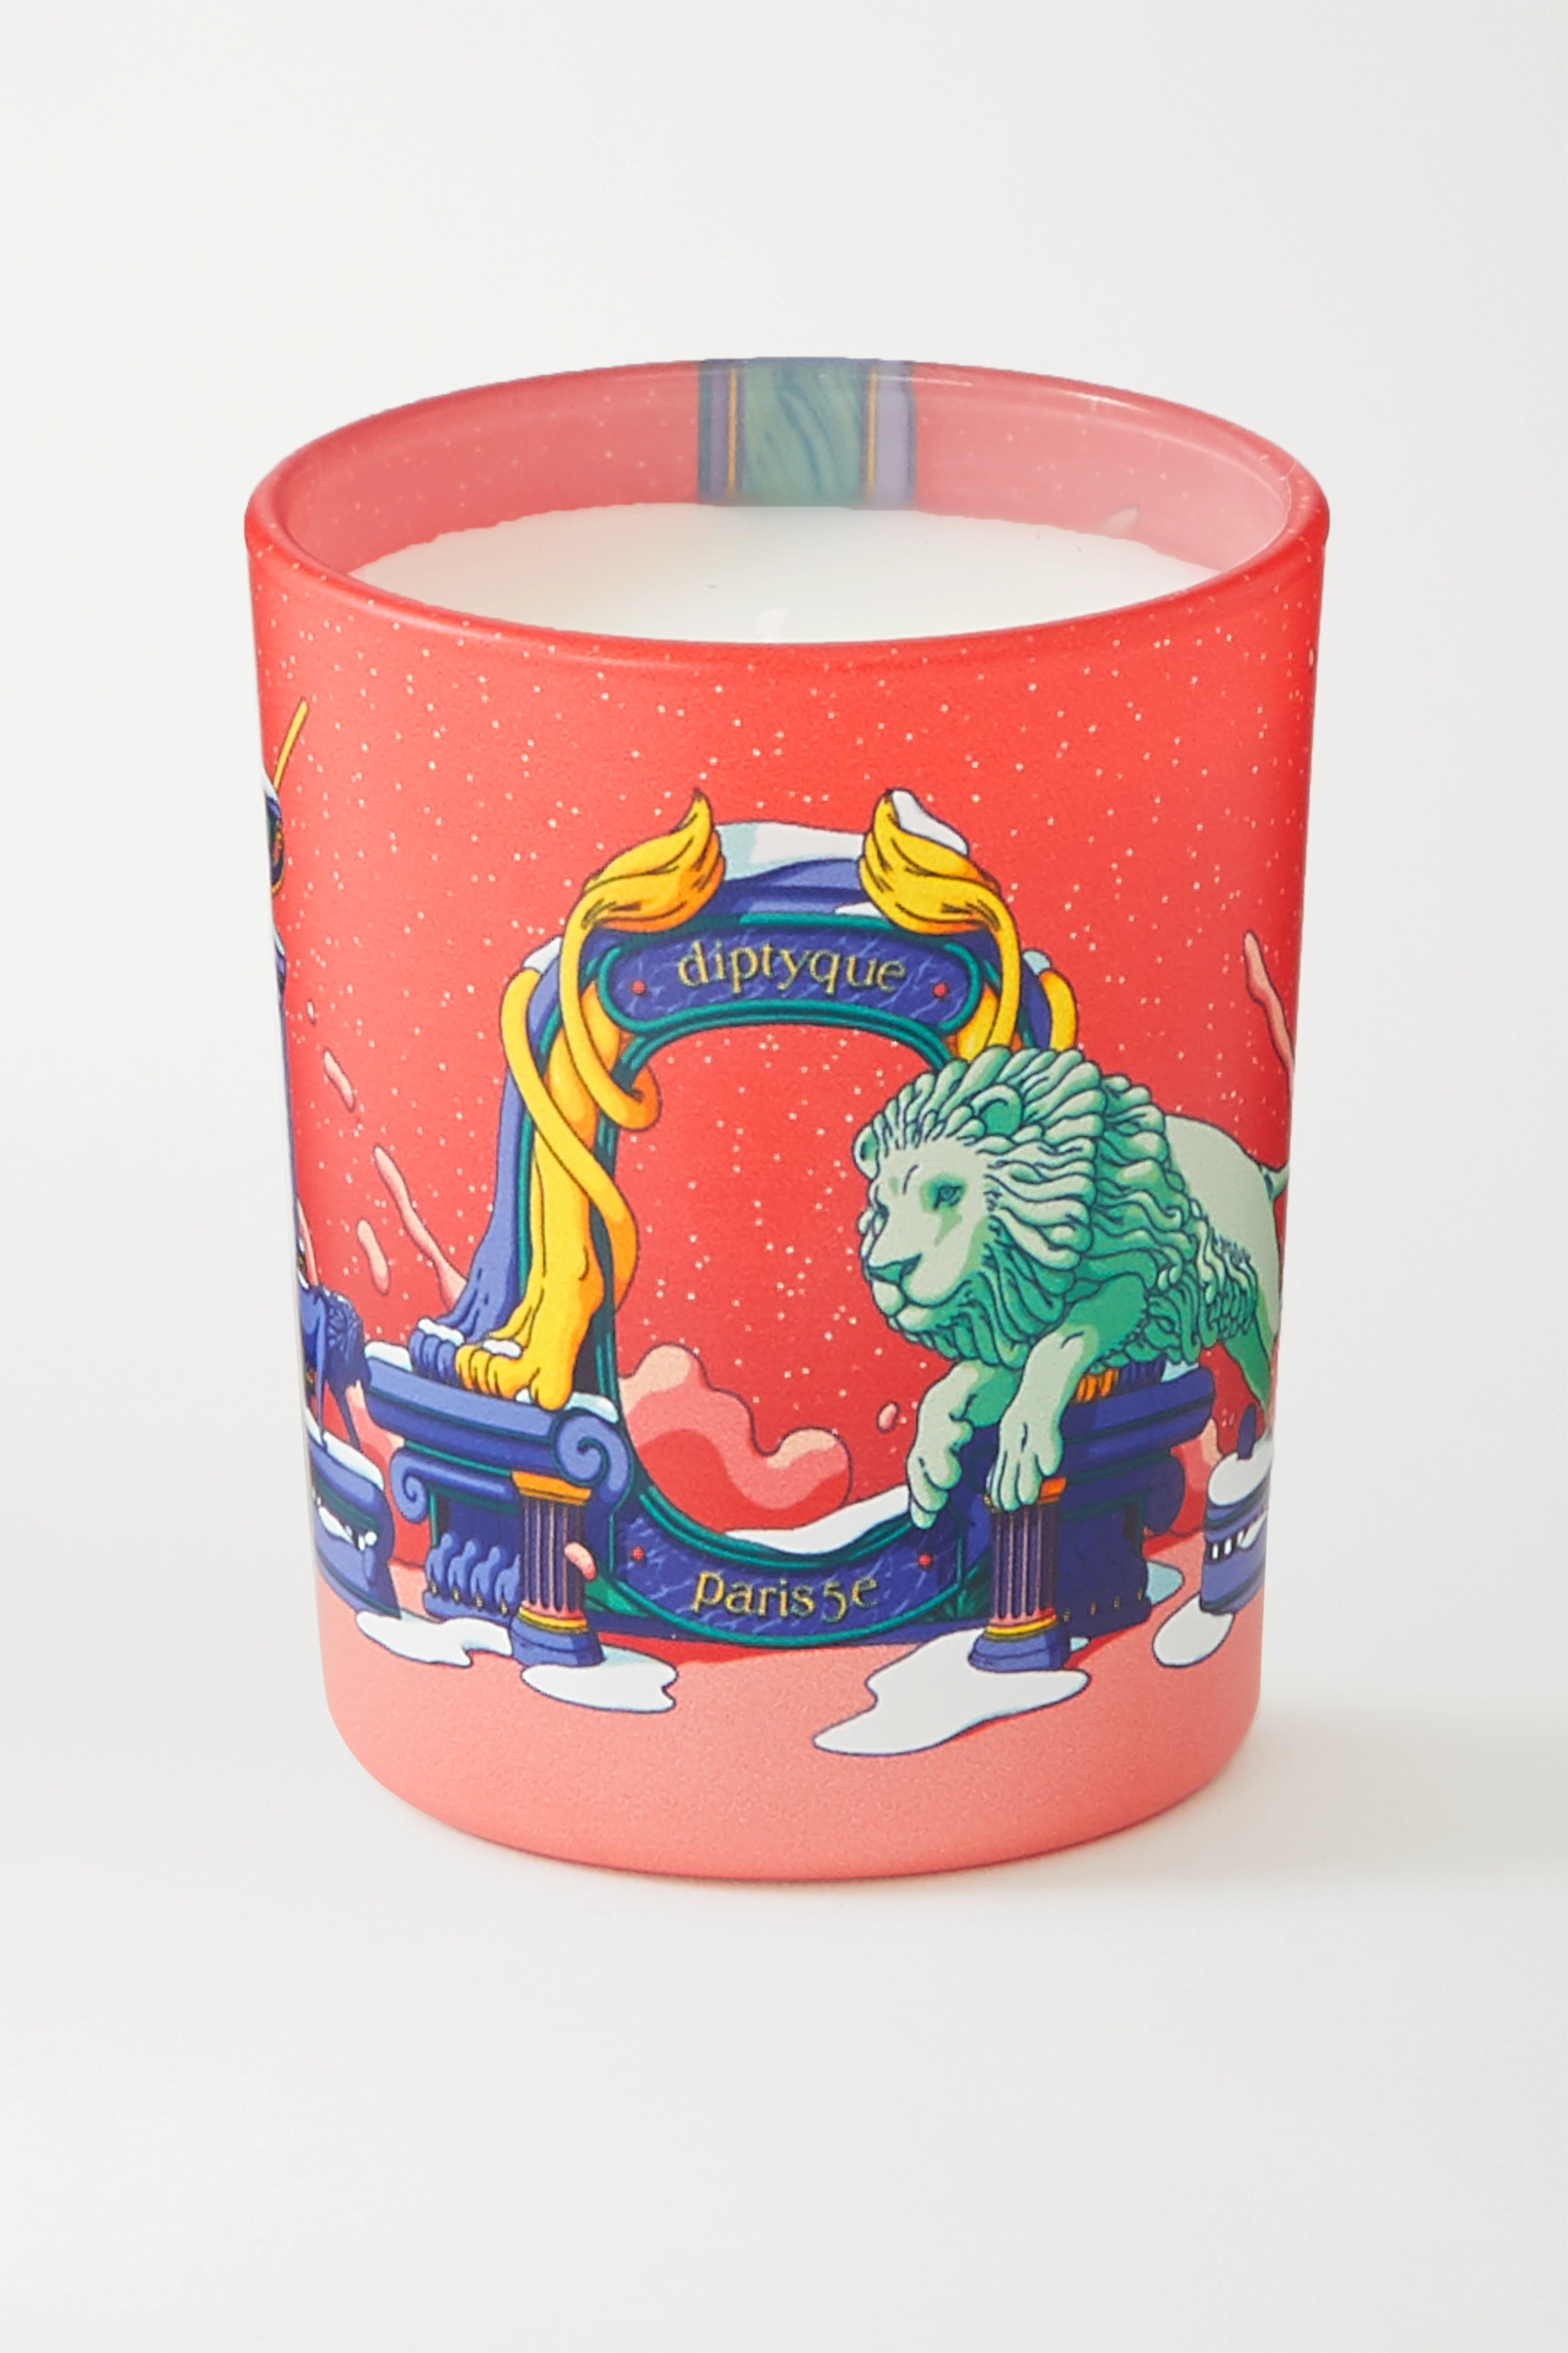 Diptyque Fleur Majeste scented candle, 70g